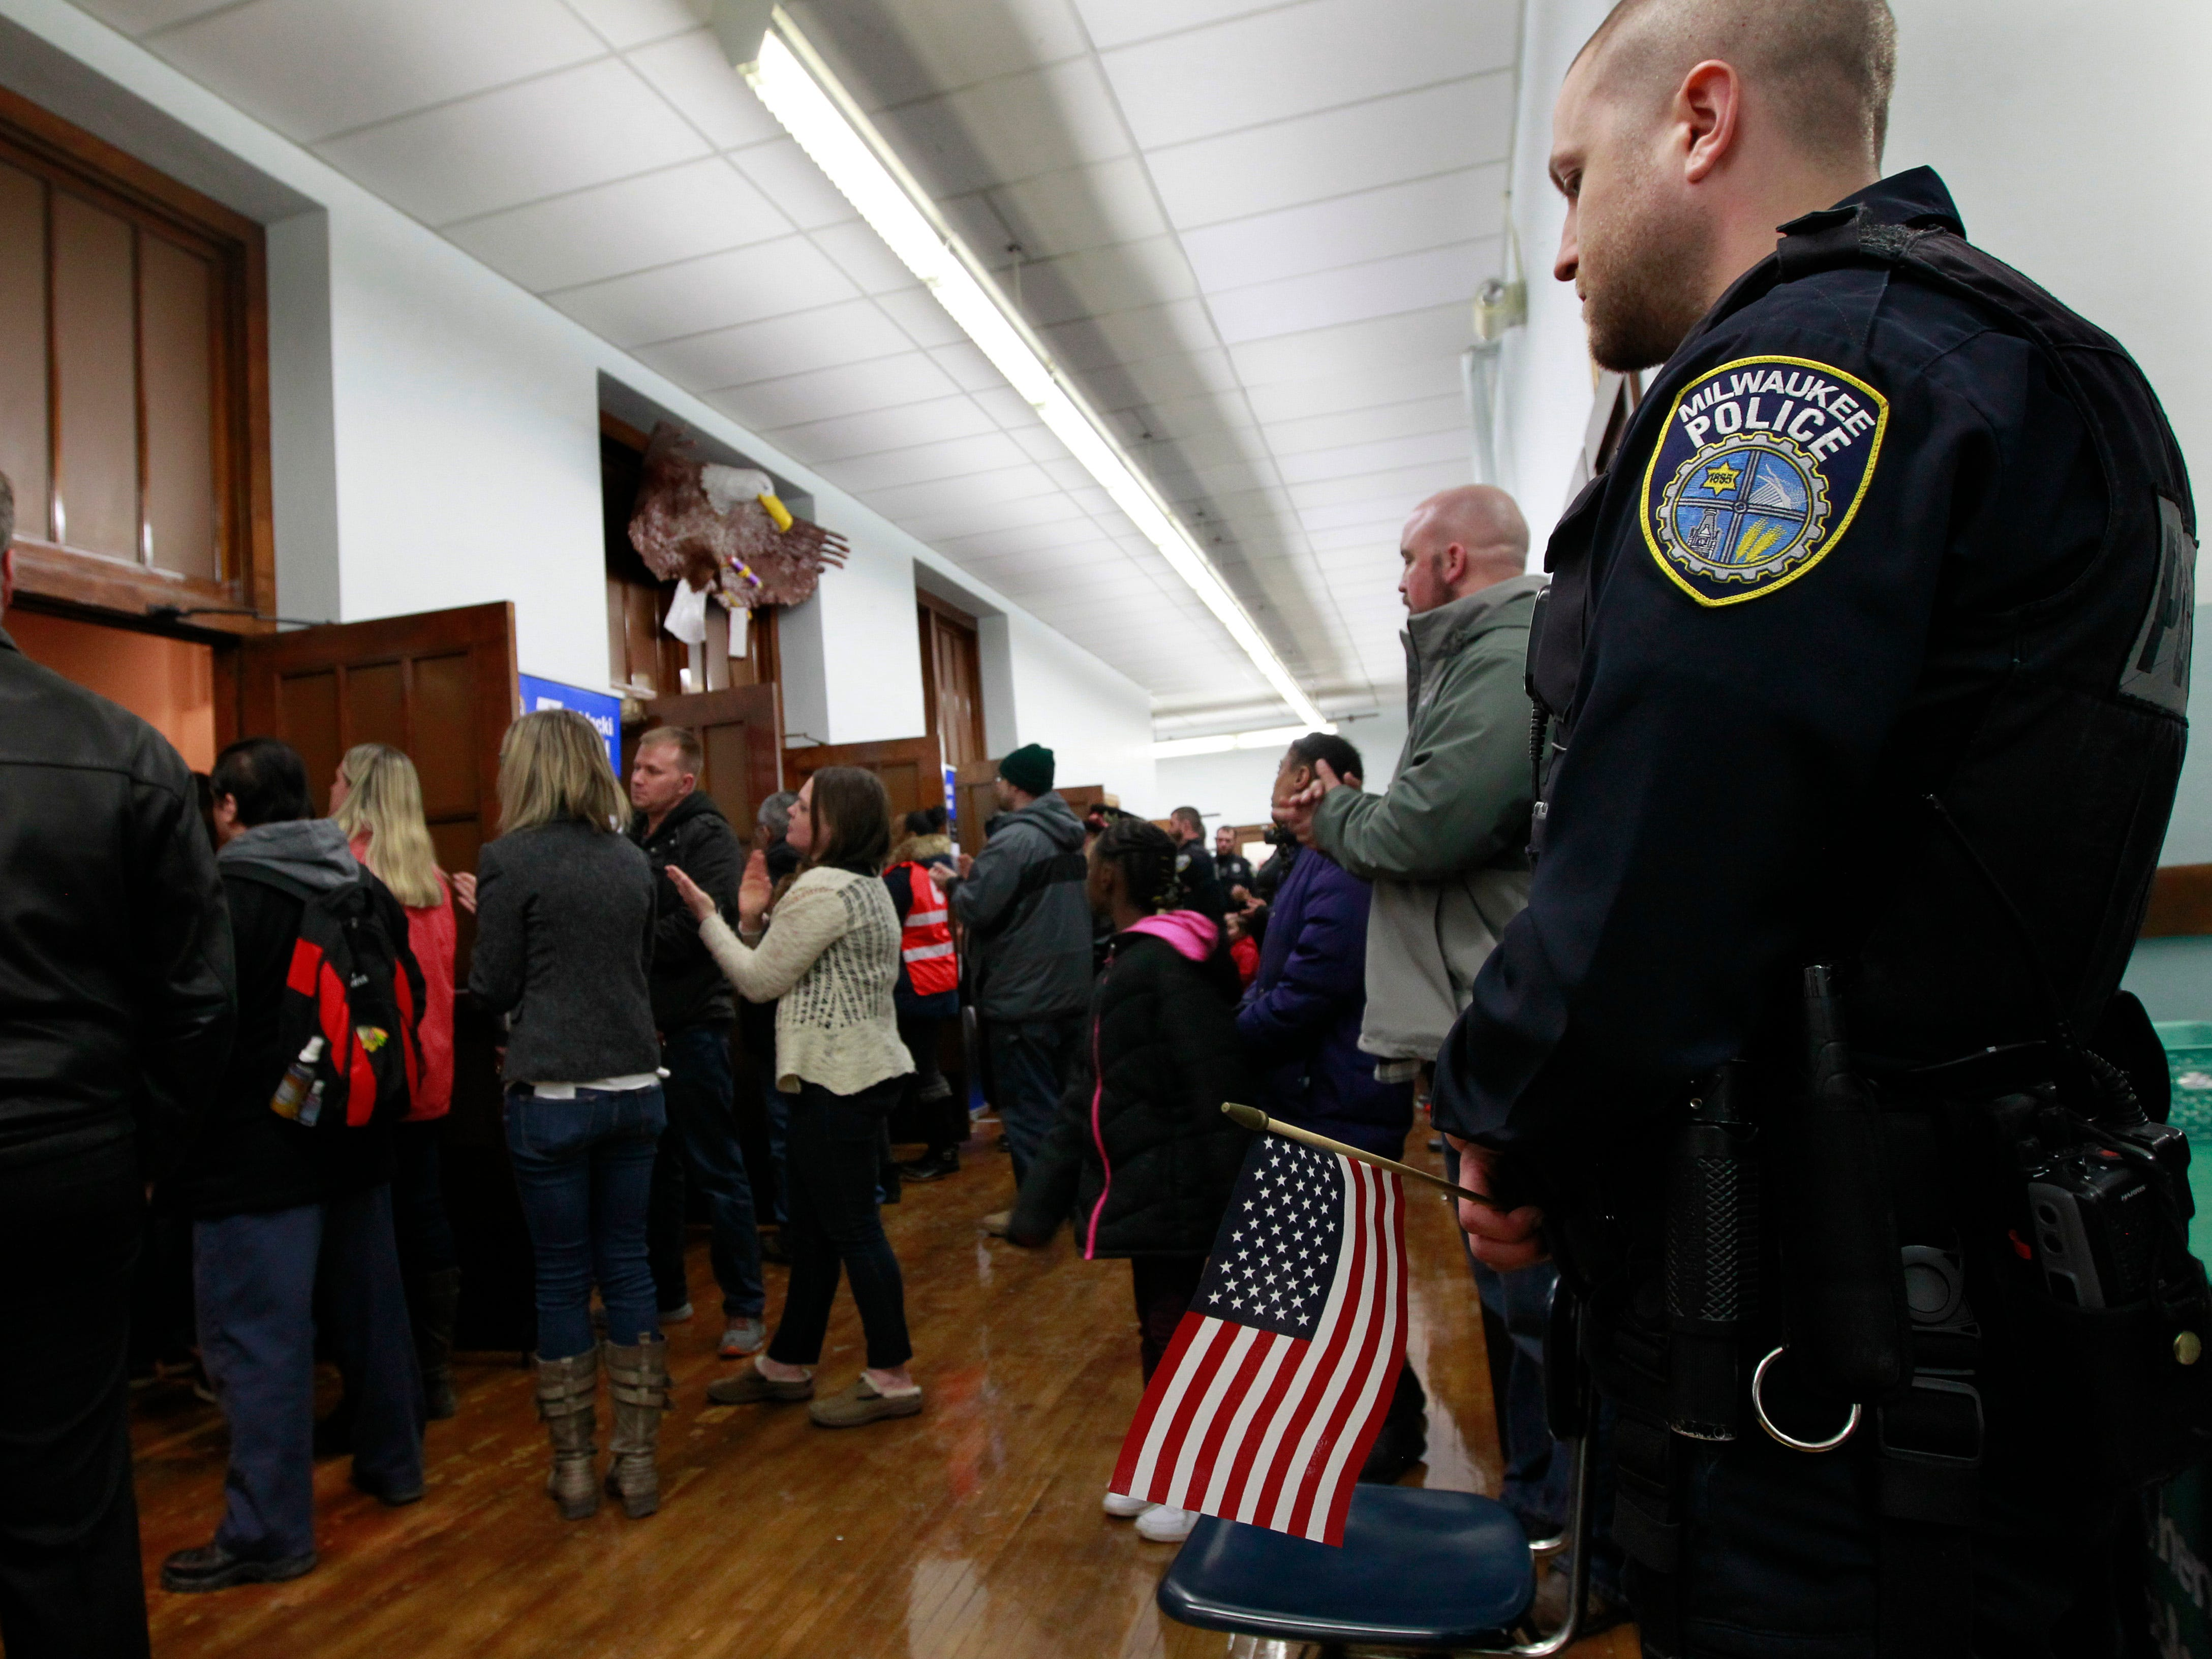 A Milwaukee police officer listens to speakers at a vigil for fallen Officer Matthew Rittner on Friday, Feb. 8, 2019, at Zablocki Elementary School. Rittner was shot while serving a search warrant on Wednesday.